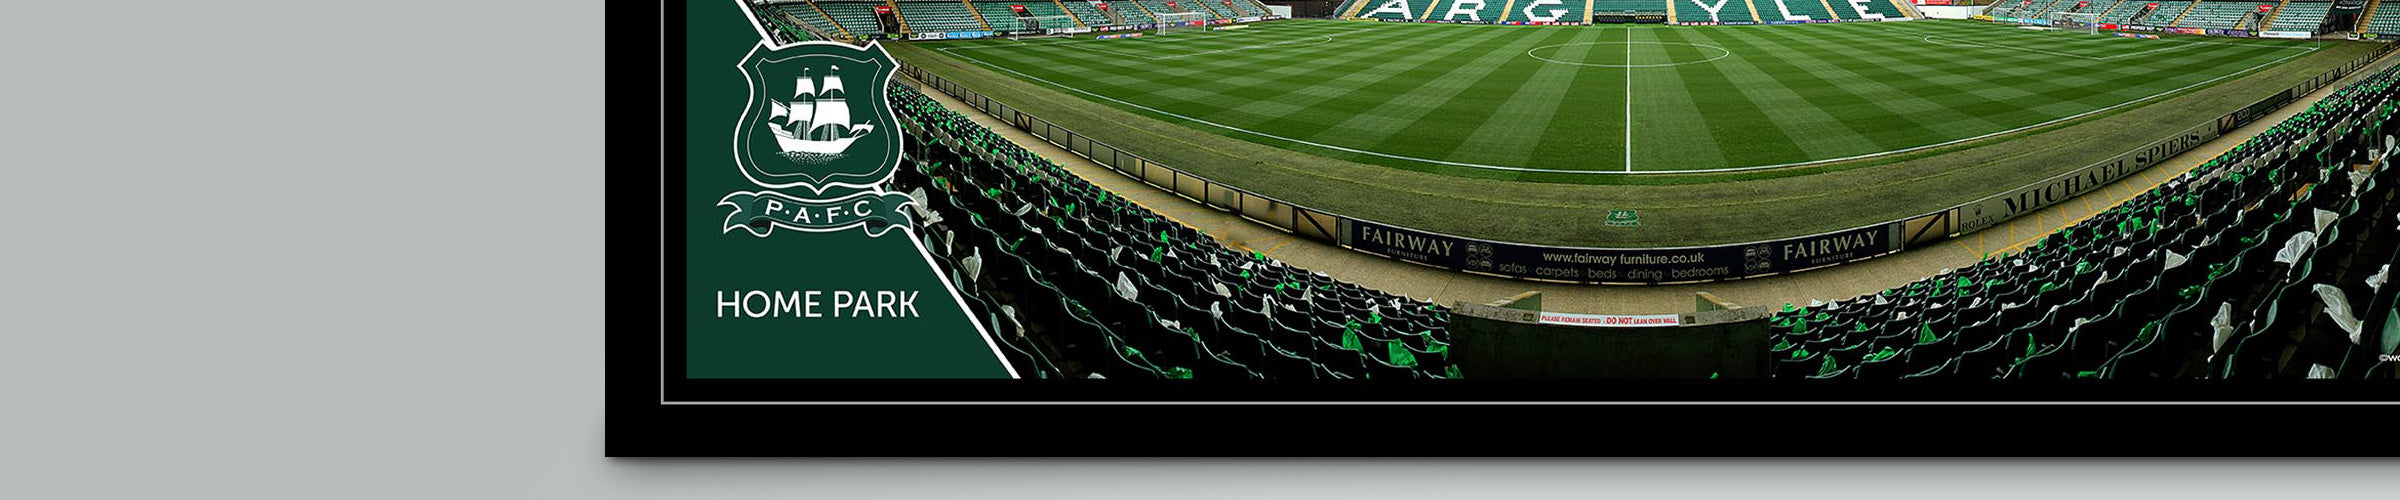 Home Park Stadium Panoramic Prints